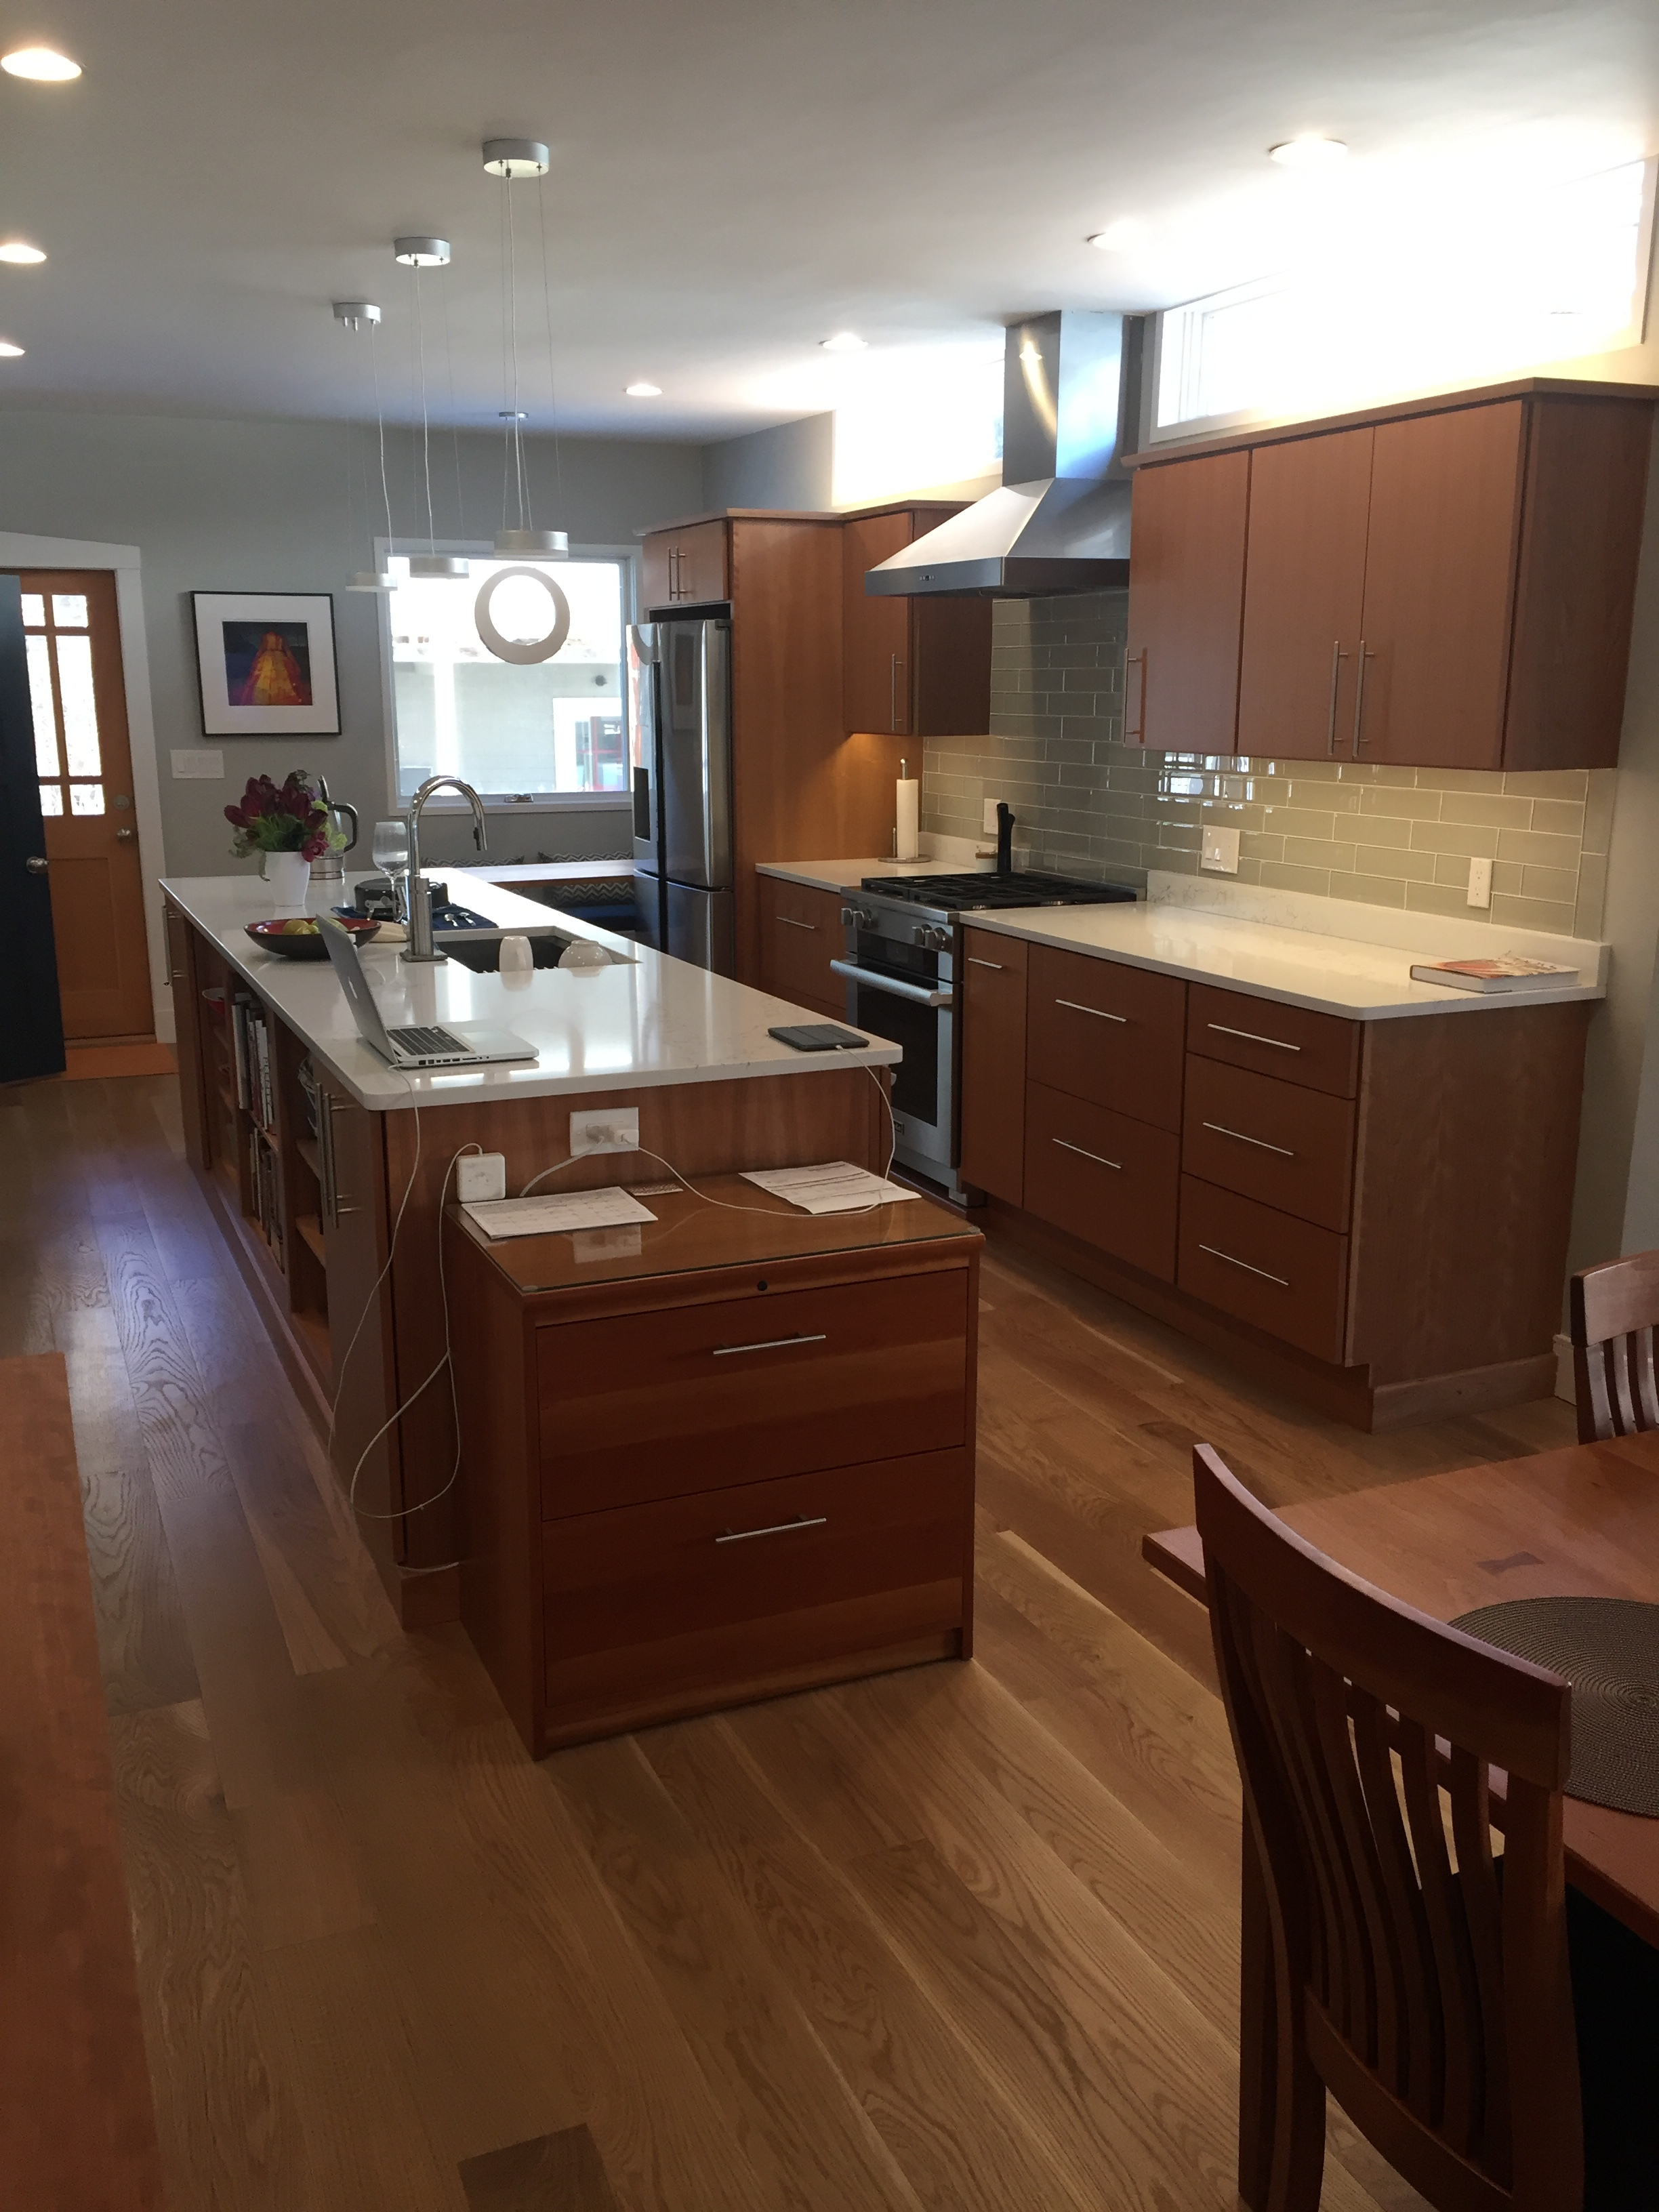 A fully renovated home with new kitchen on display.